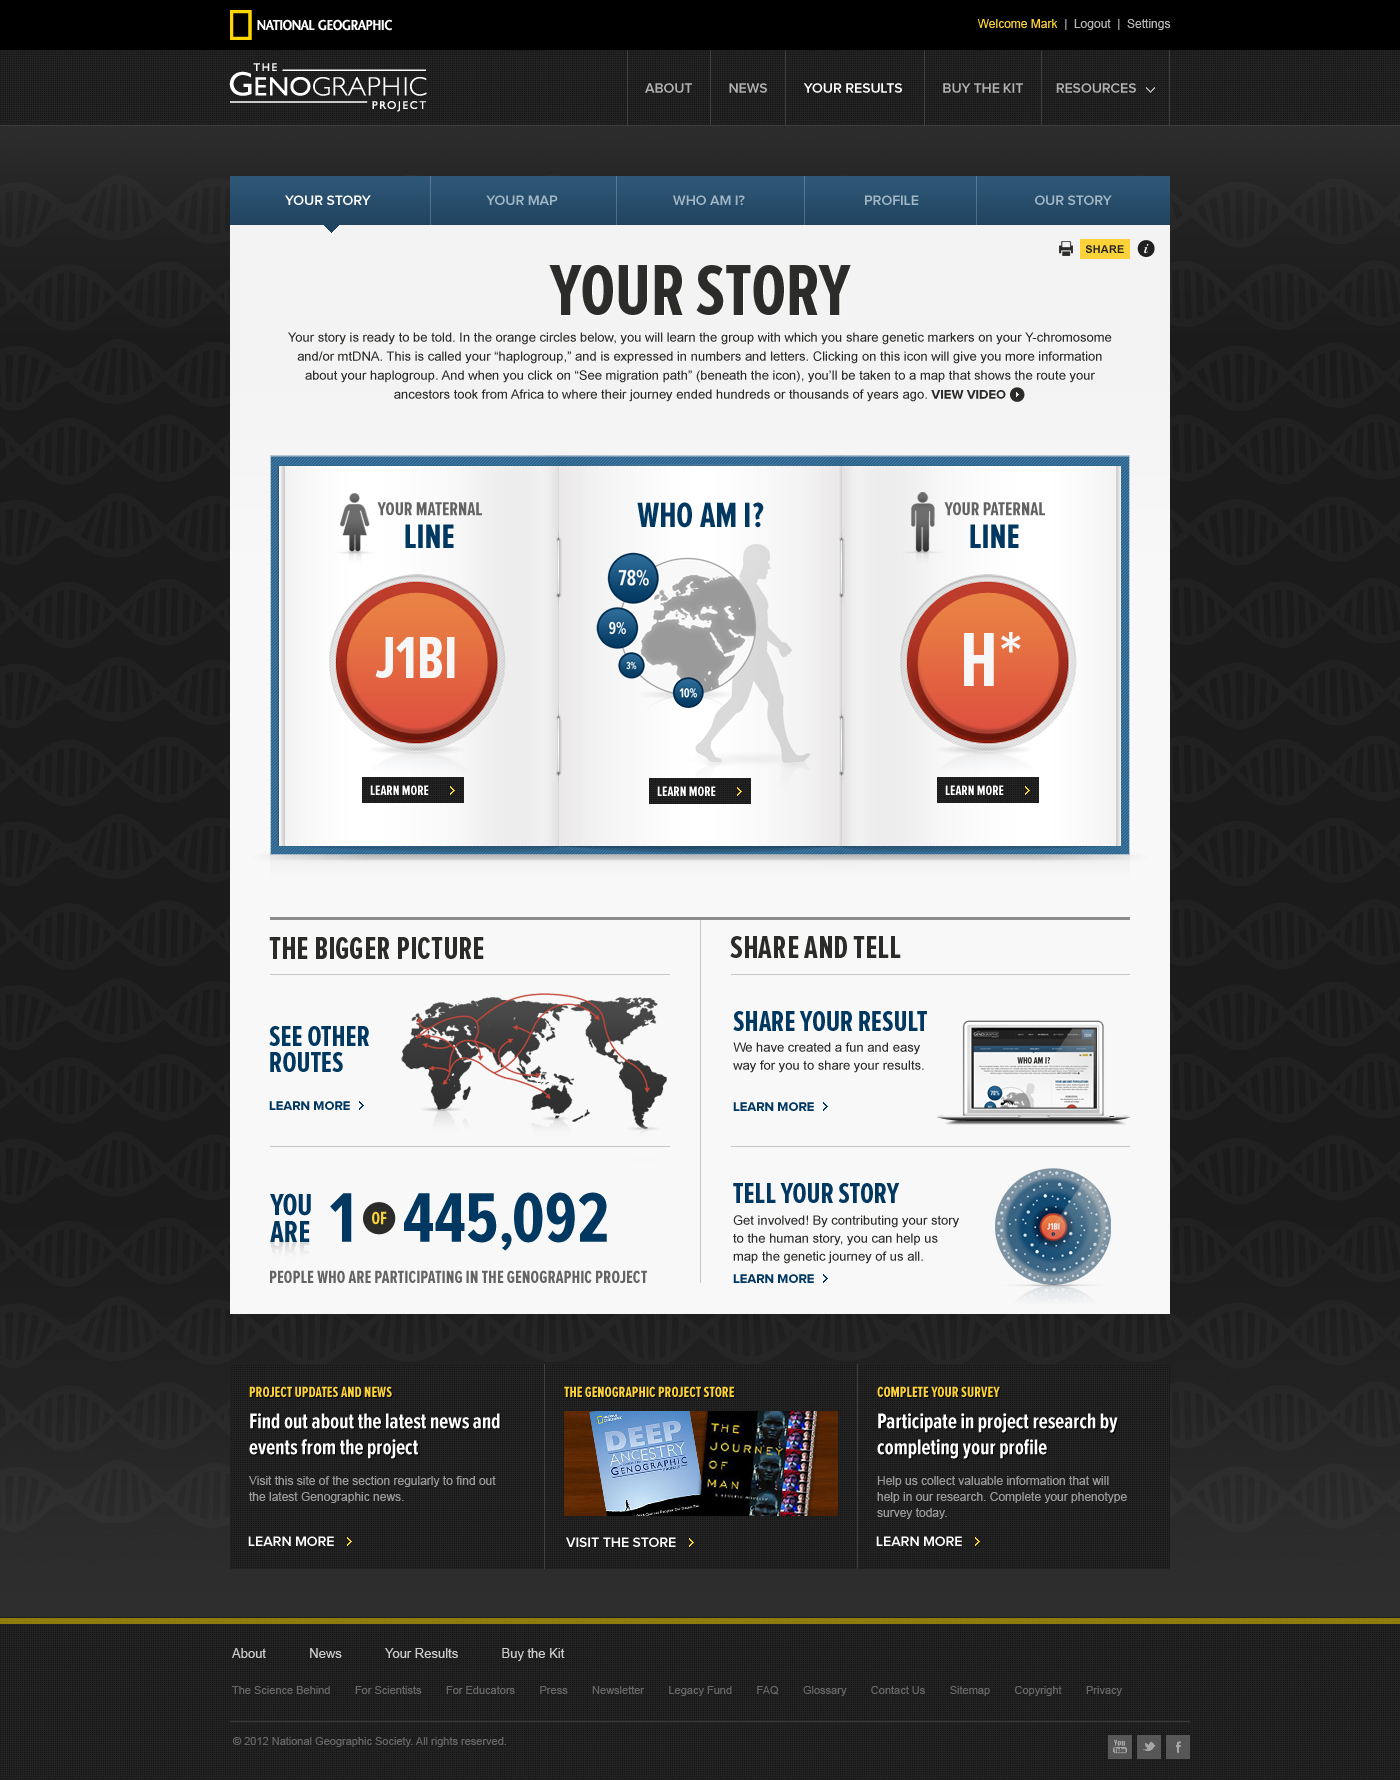 2012-07-31-results_yourstory_mainpane.jpg